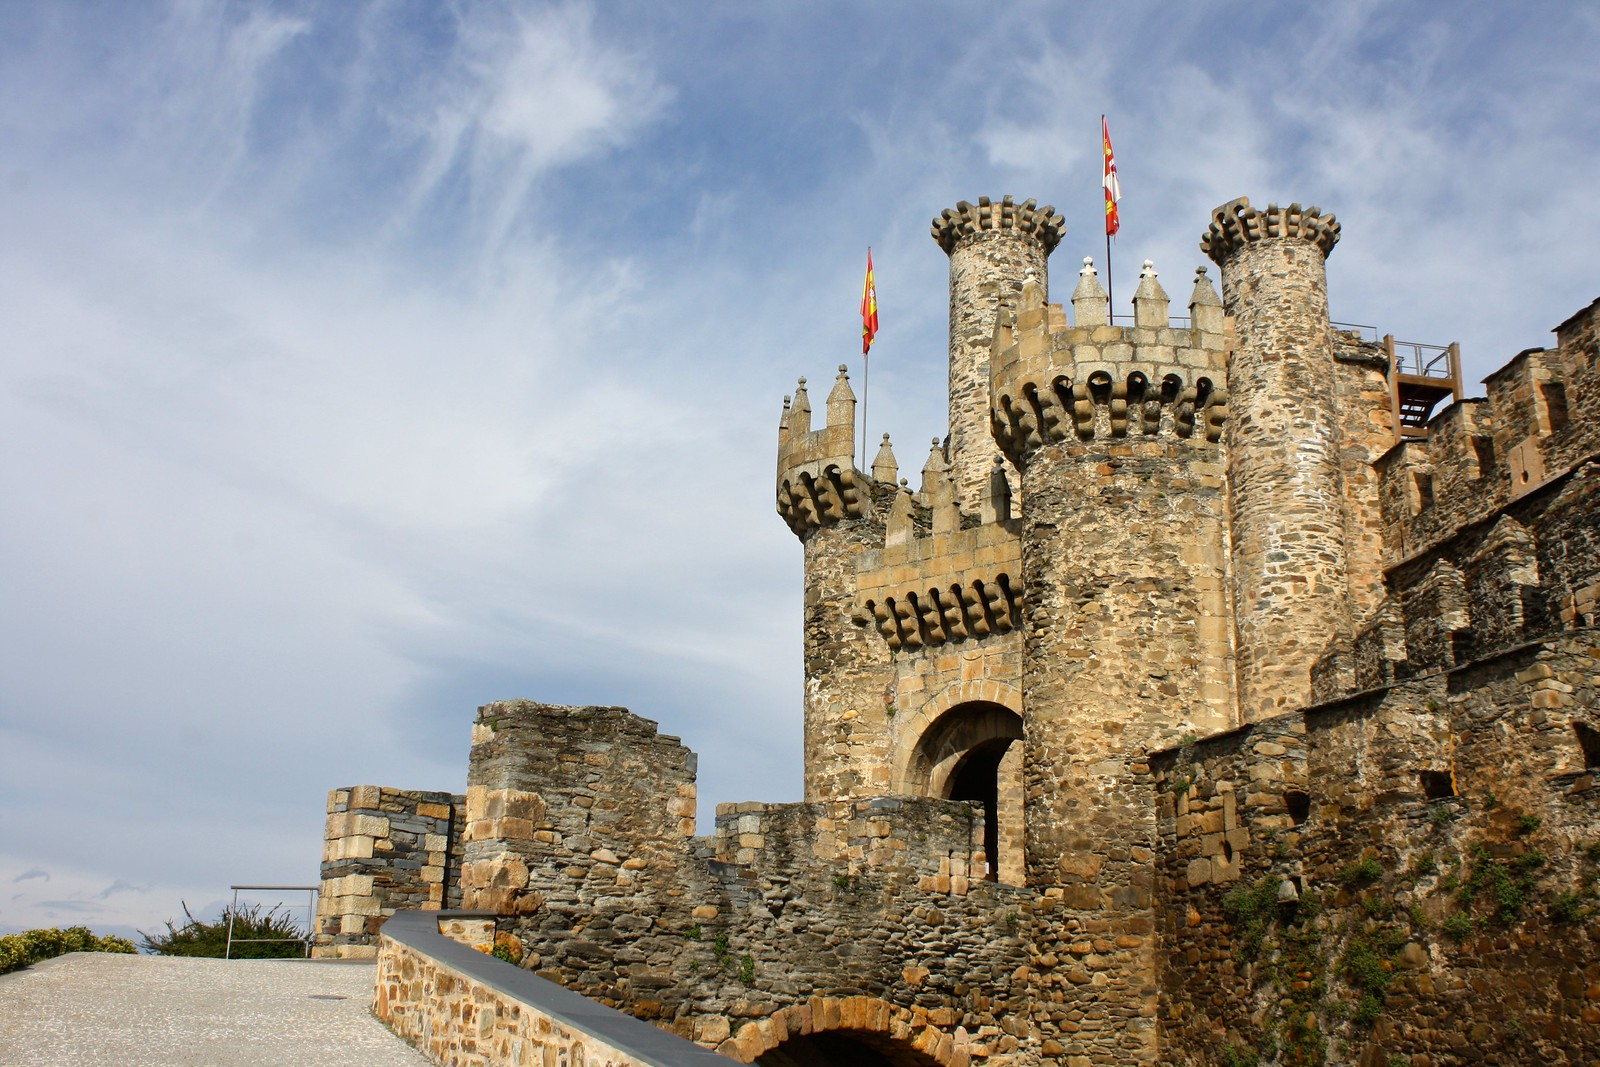 Knights Templar Castle, Ponferrada, Spain